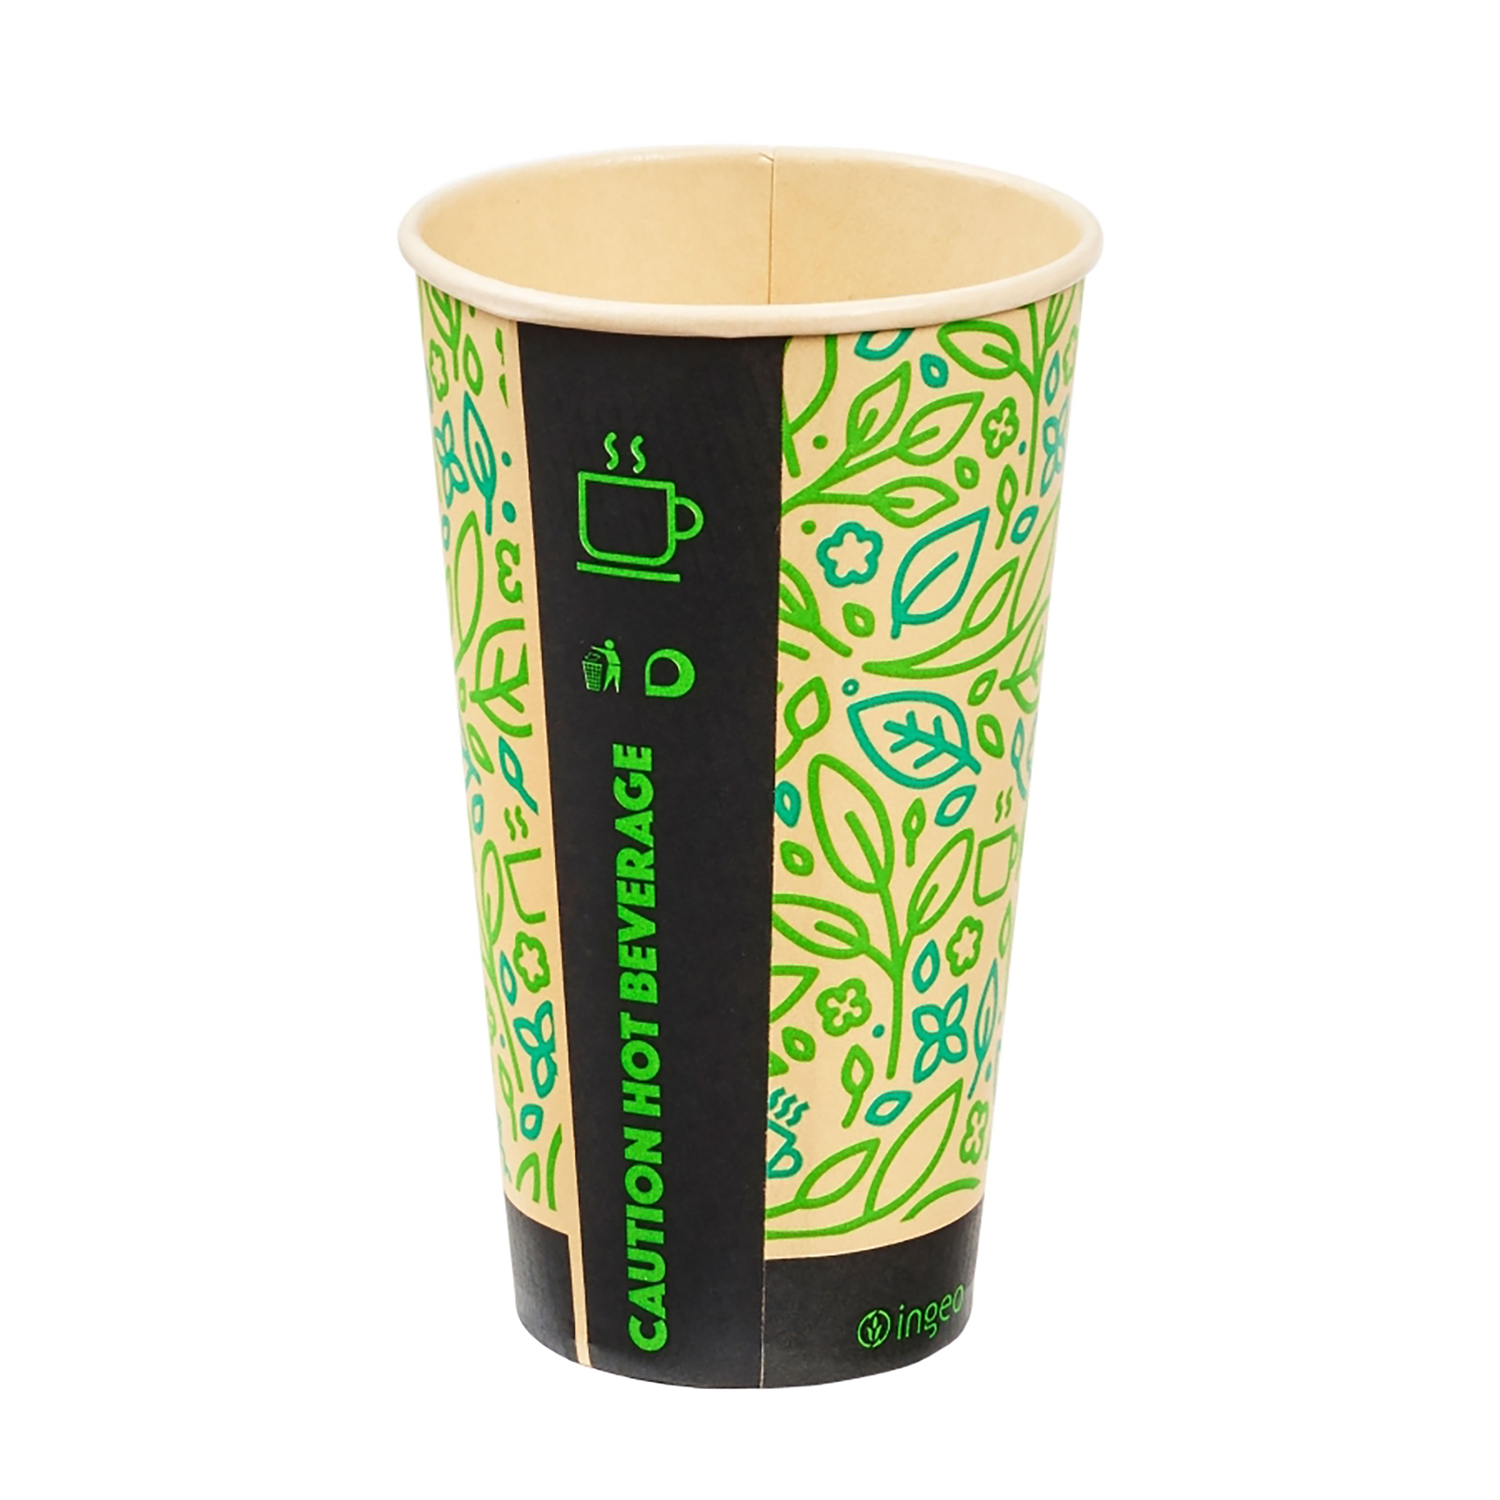 Catering Utensils Ingeo Ultimate Eco Bamboo 16oz Biodegradable Disposable Cups Ref 0511225 Pack 25